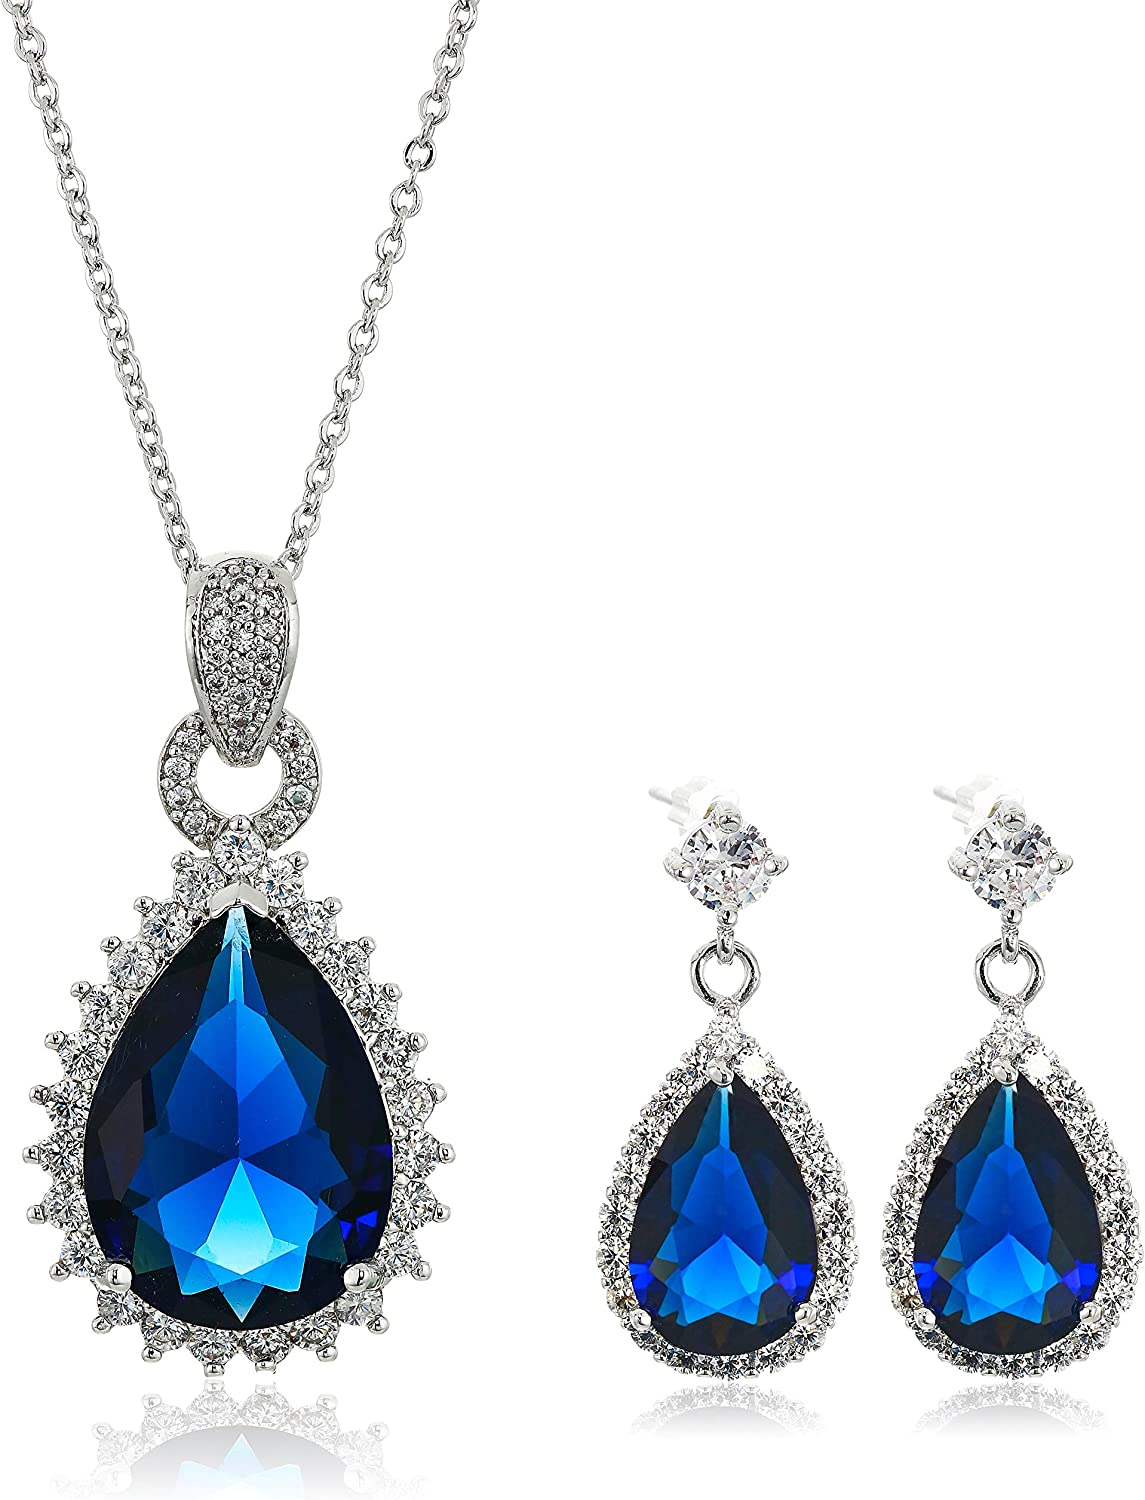 Crystalline Azuria Jewelry Sets for Women - Premium Wedding Jewelry Sets - Bridal Jewelry Set with Necklace and Earring for Bride - Cubic Zirconia Bridesmaid Jewelry - Formal Prom Costume Jewelry